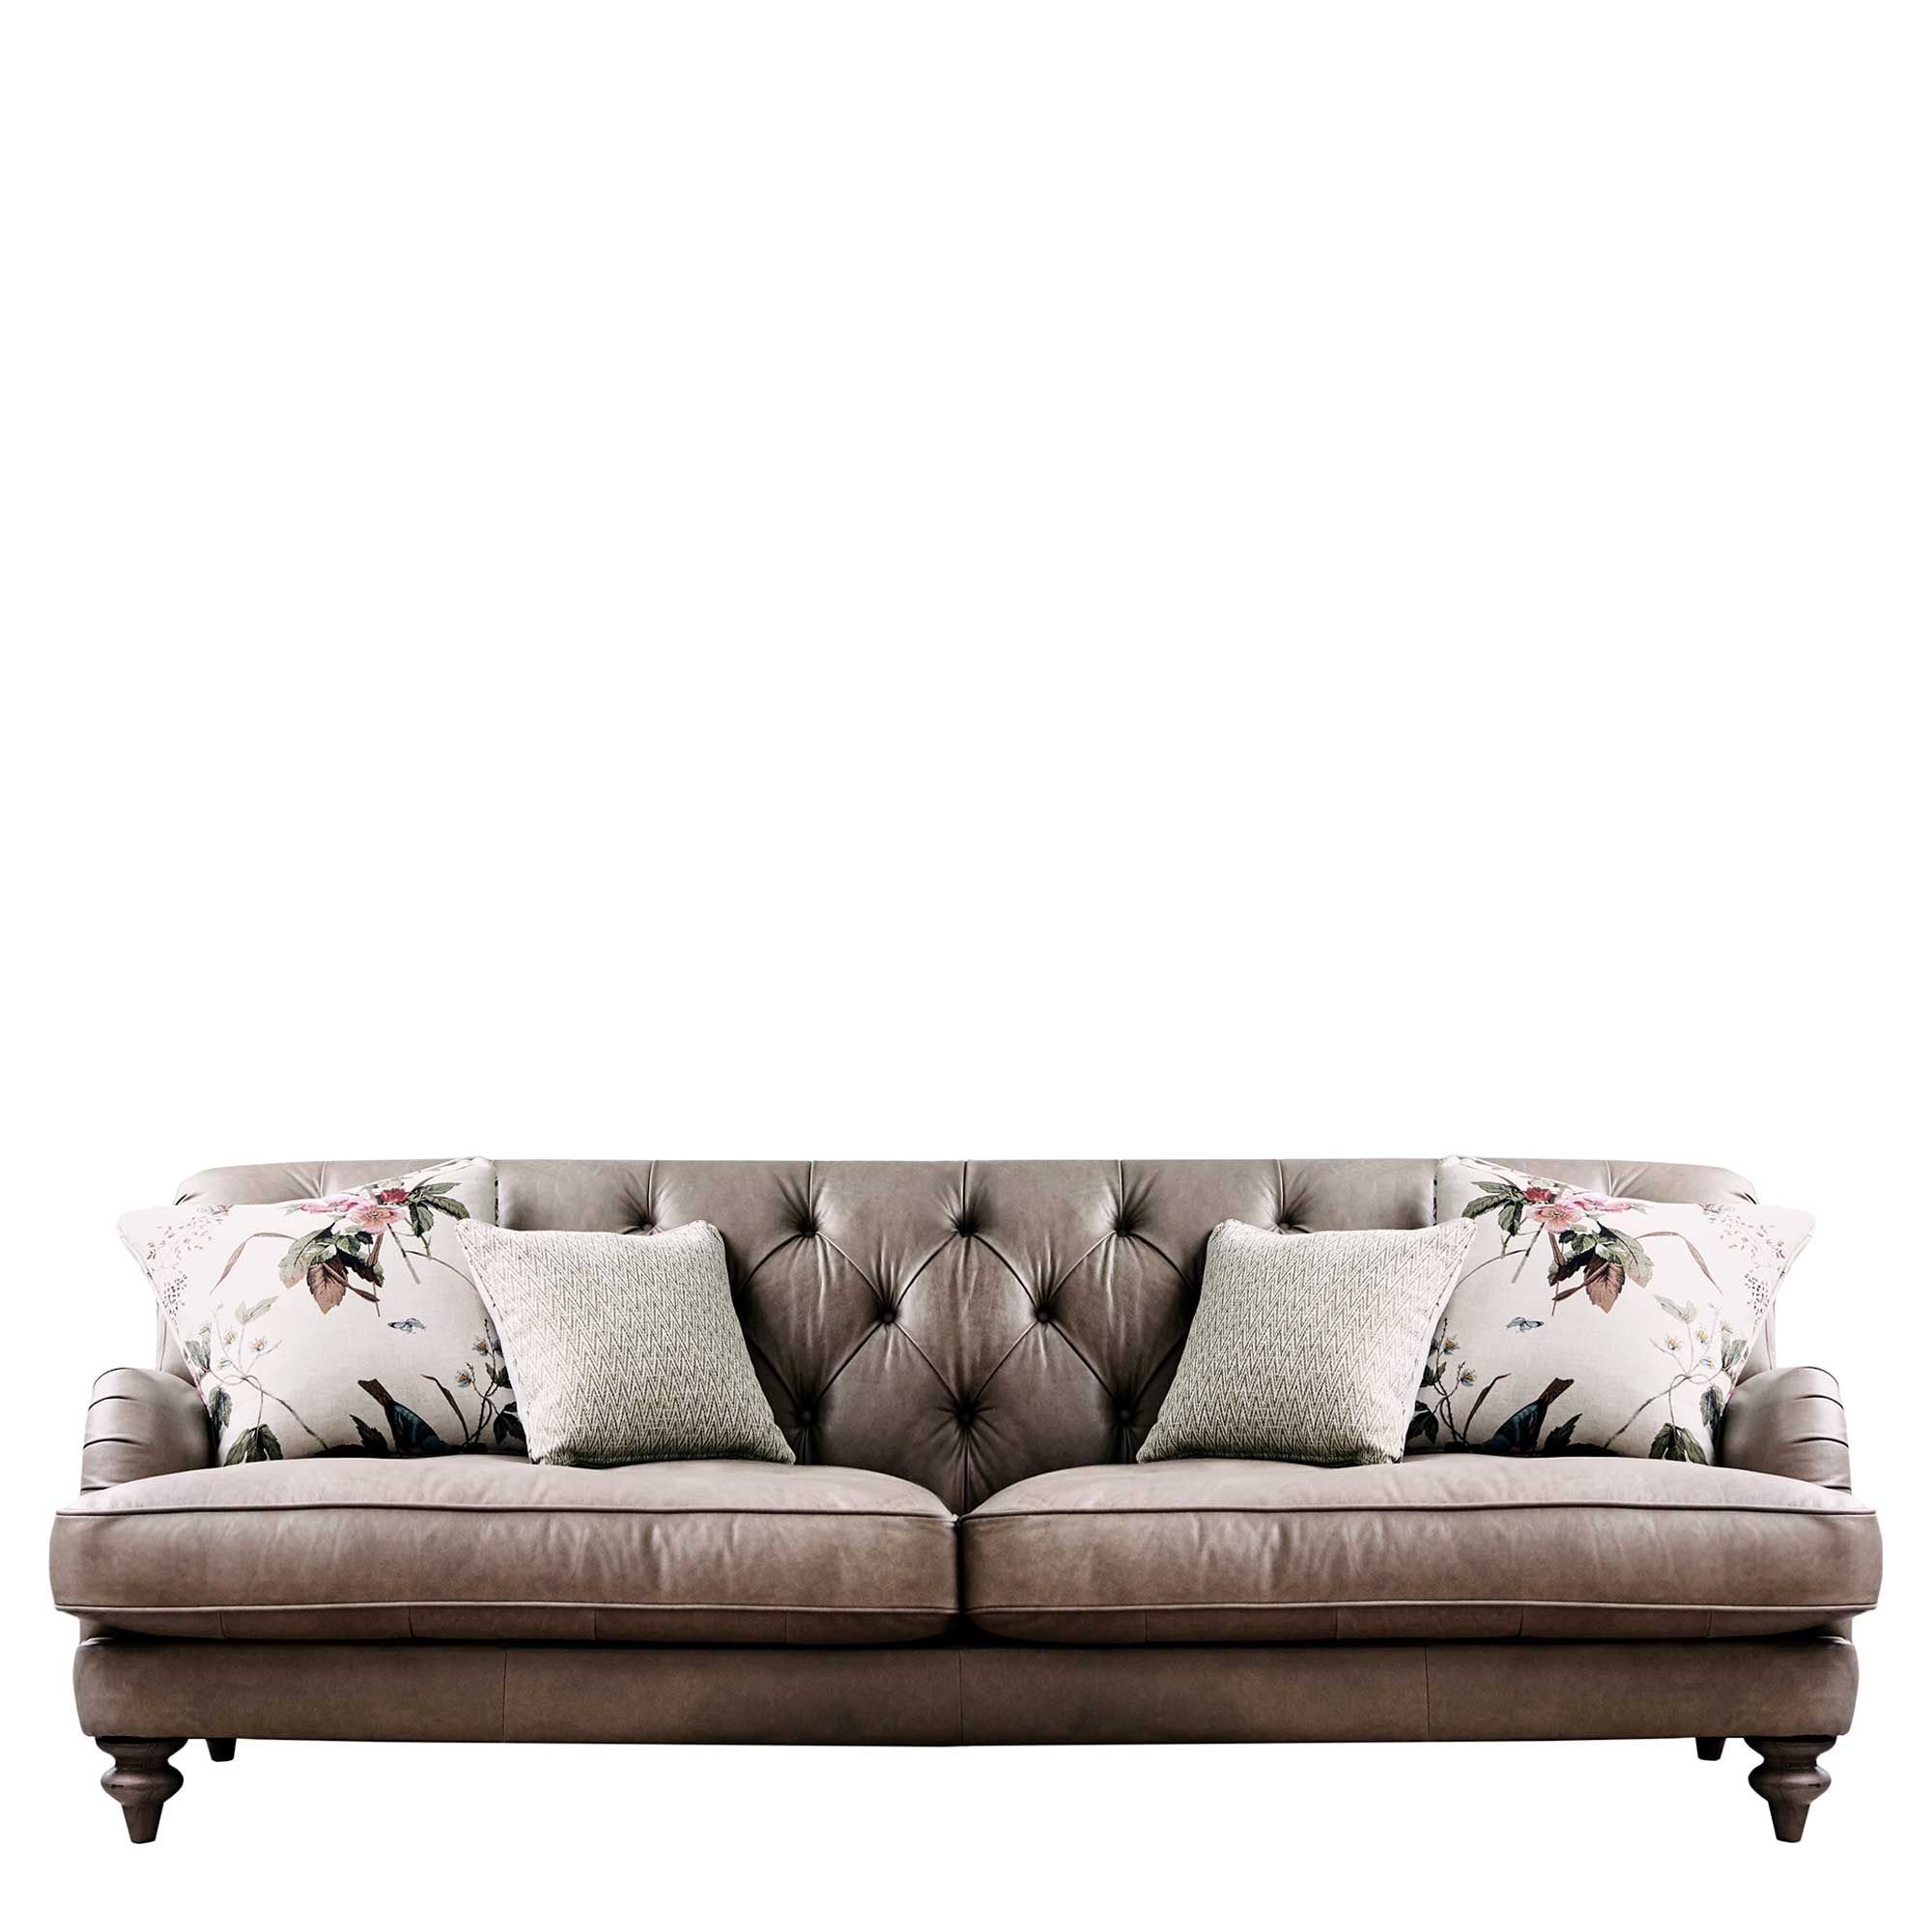 Windermere Extra Sofa Leather available online at Barker